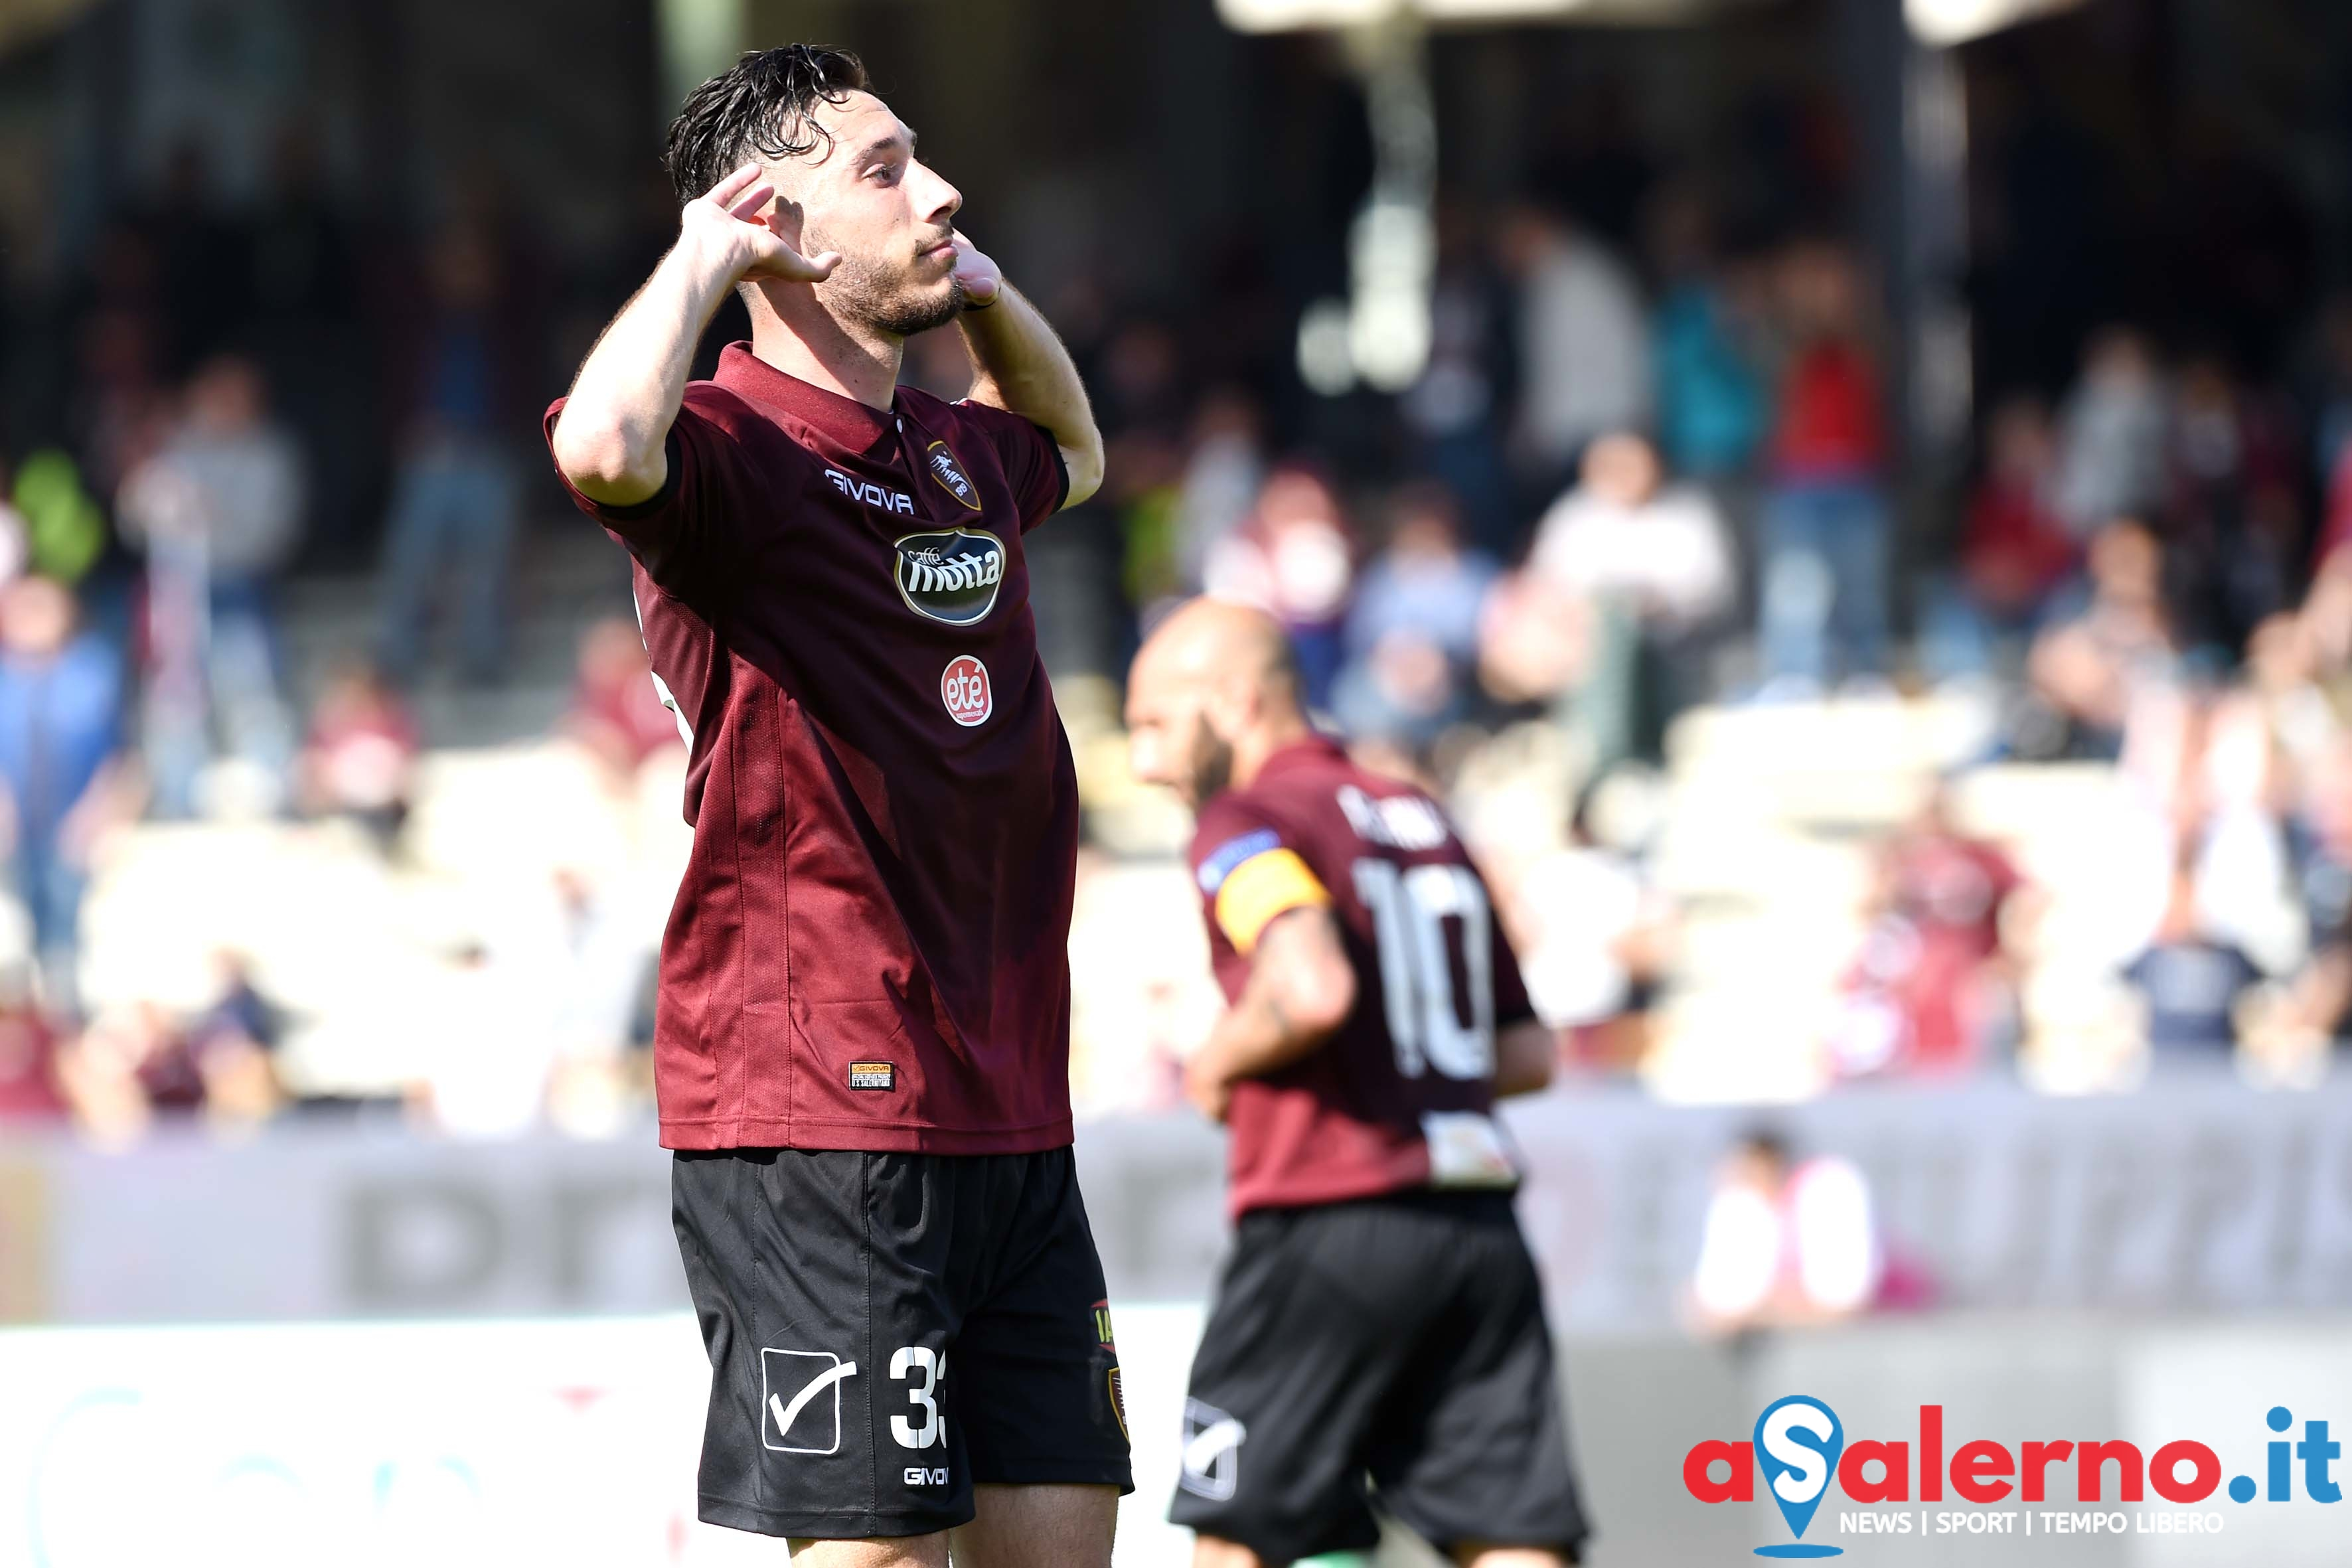 Serie B, Salernitana-Latina 2-1: pagelle e highlights. Diretta